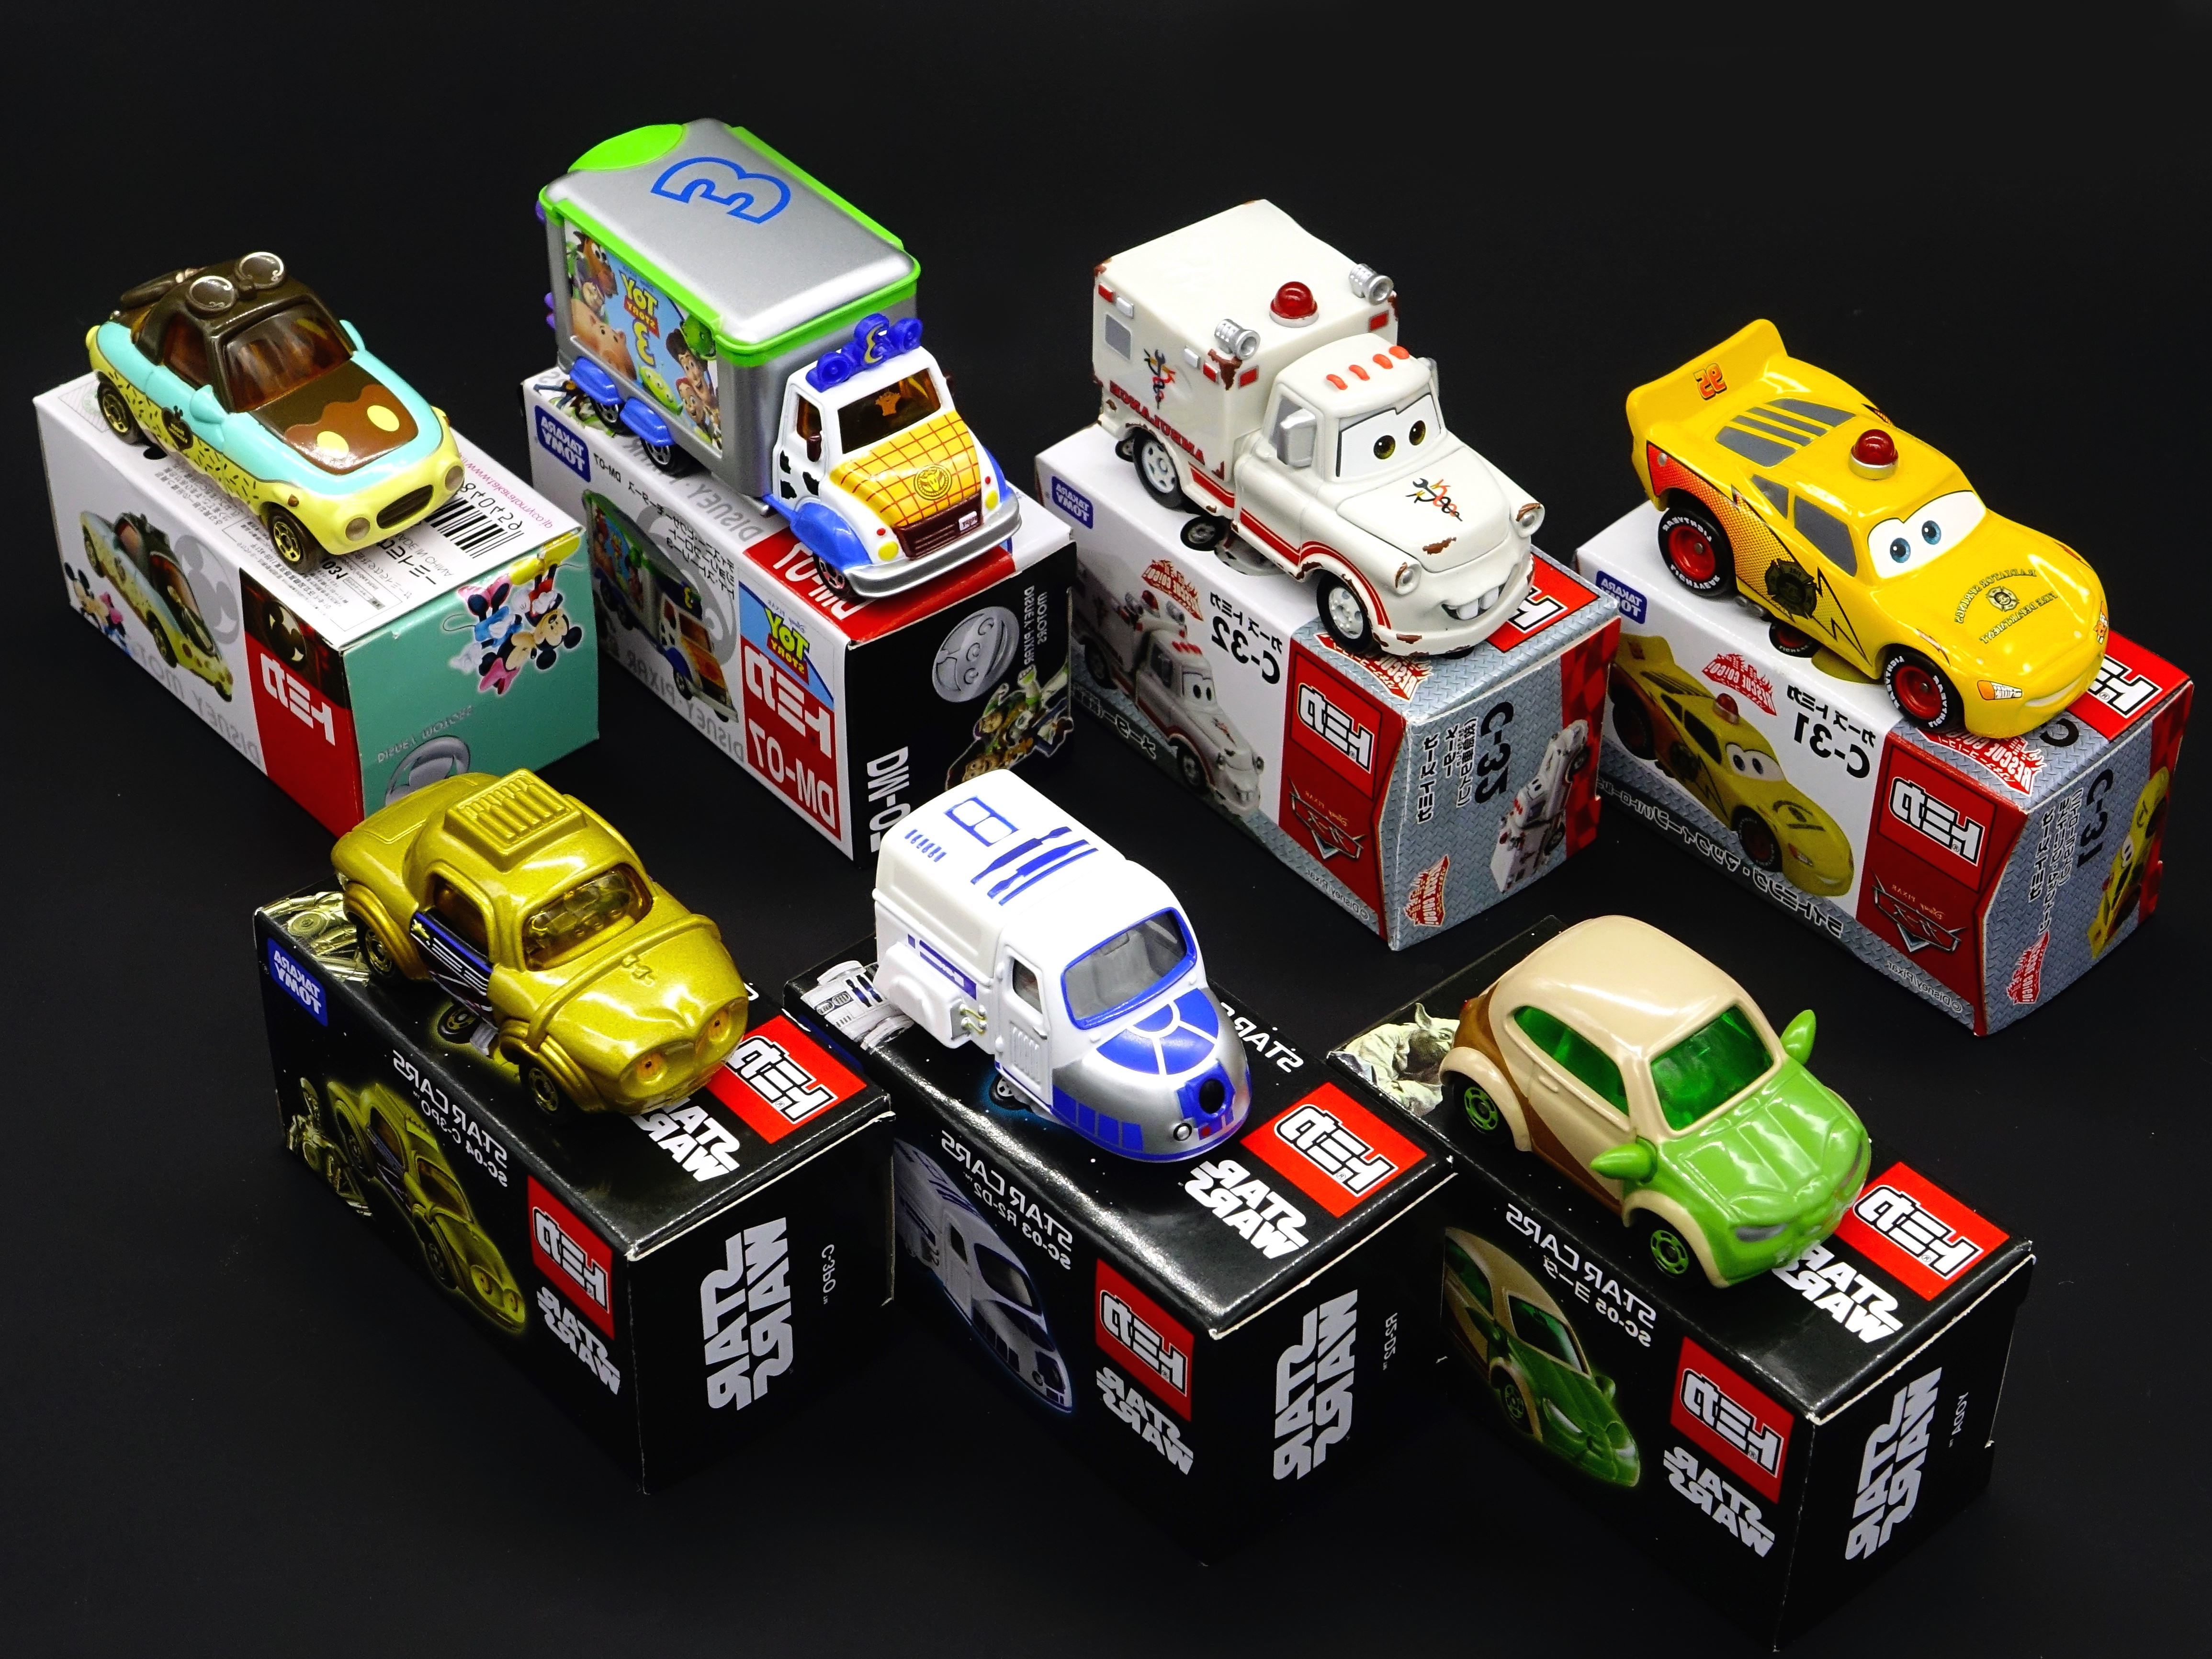 Free picture: cars, collection, cute, automobile, cars, toys